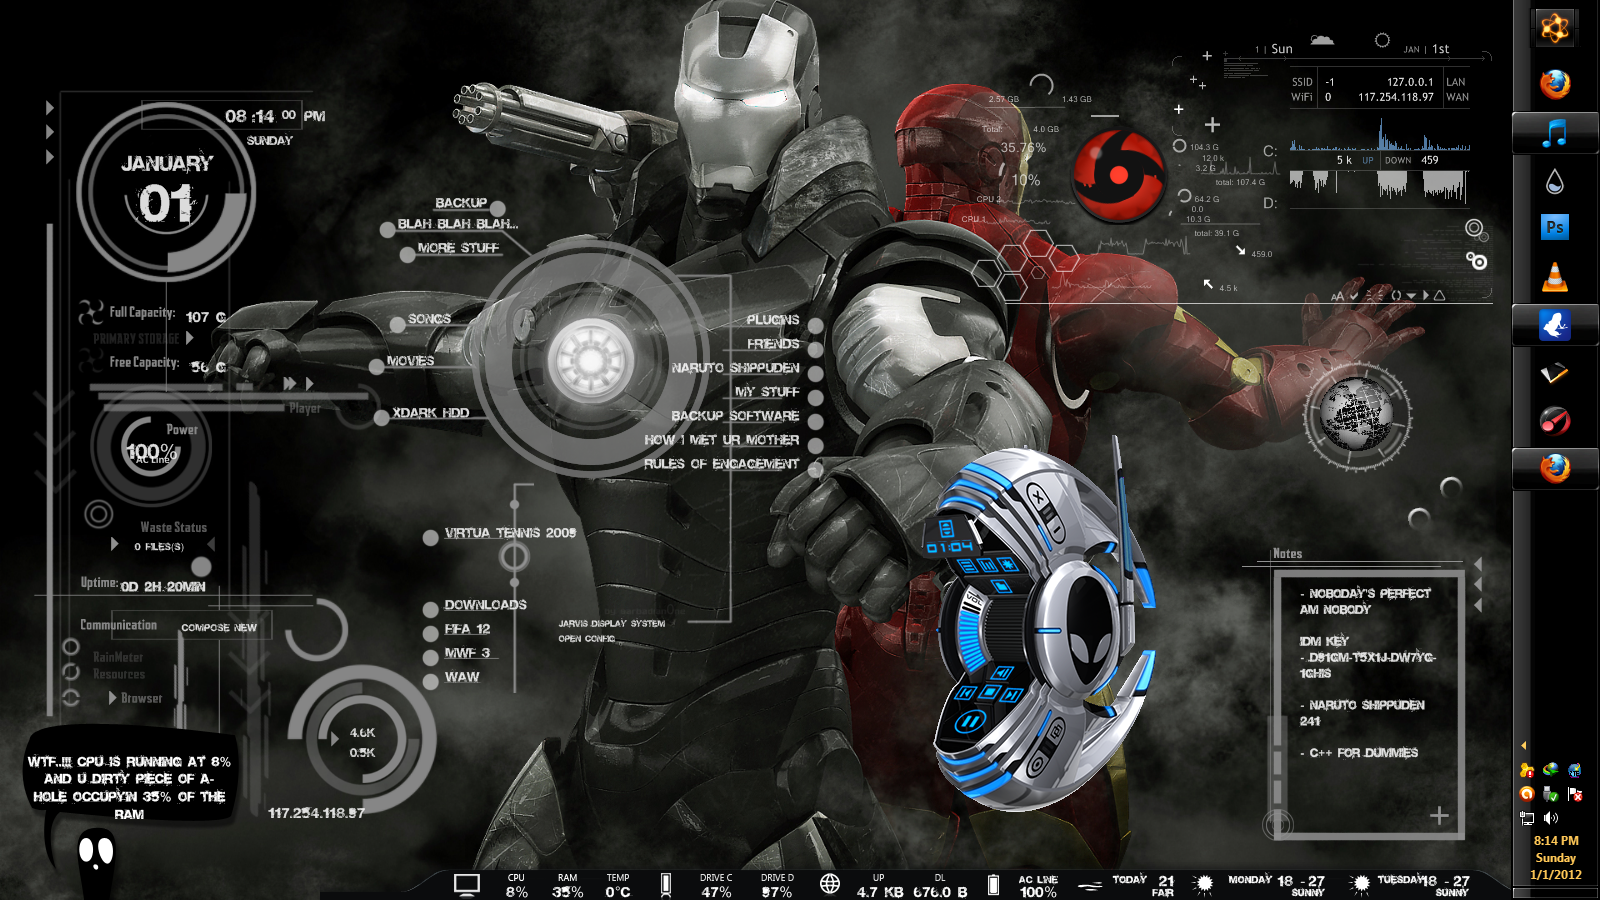 Free S Themes Windows 7 Pc